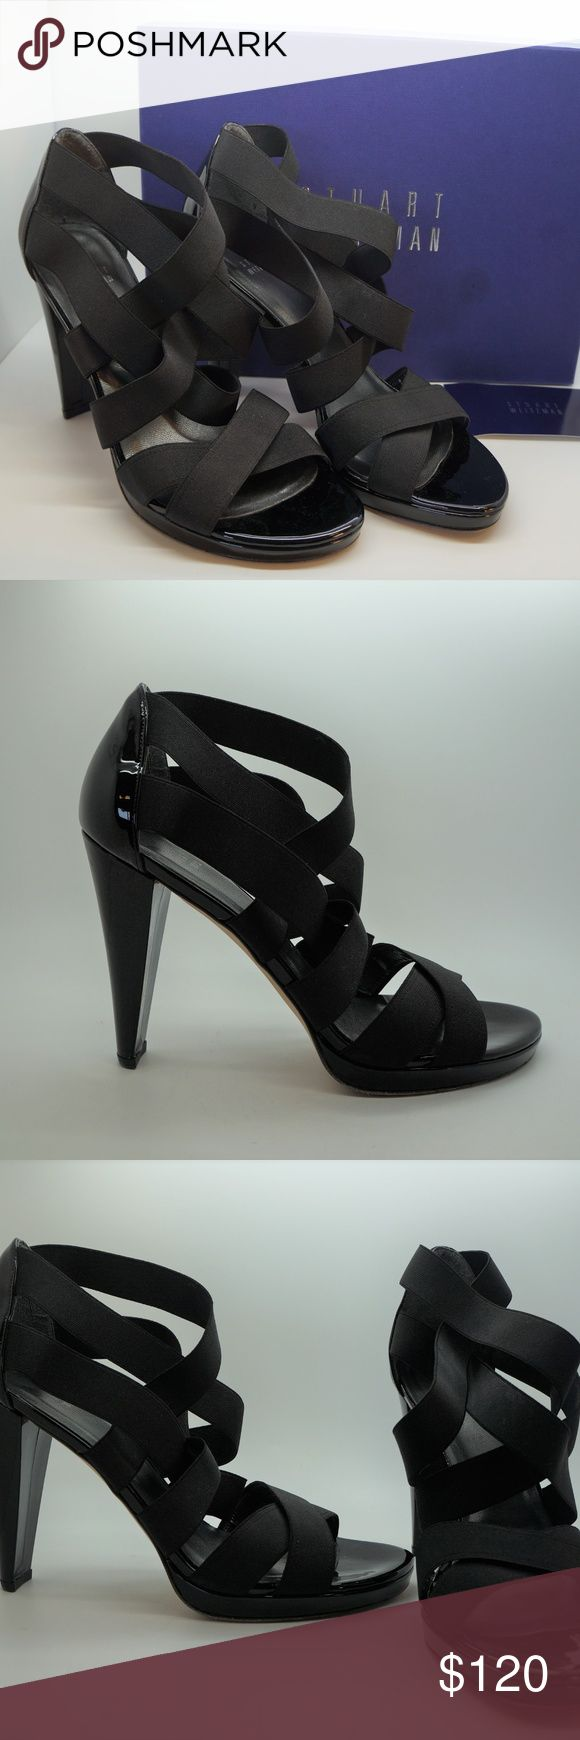 "Stuart Weitzman Black Strappy Sandals Heels Stuart Weitzman Black Elastic Strappy Sandals Retails for $355 Size 10 Excellent pre-owned condition/only worn once. The soles have some light wear. There is some sticker residue on the bottom soles. 4.5"" heel  .75"" platform Stuart Weitzman Shoes Heels"